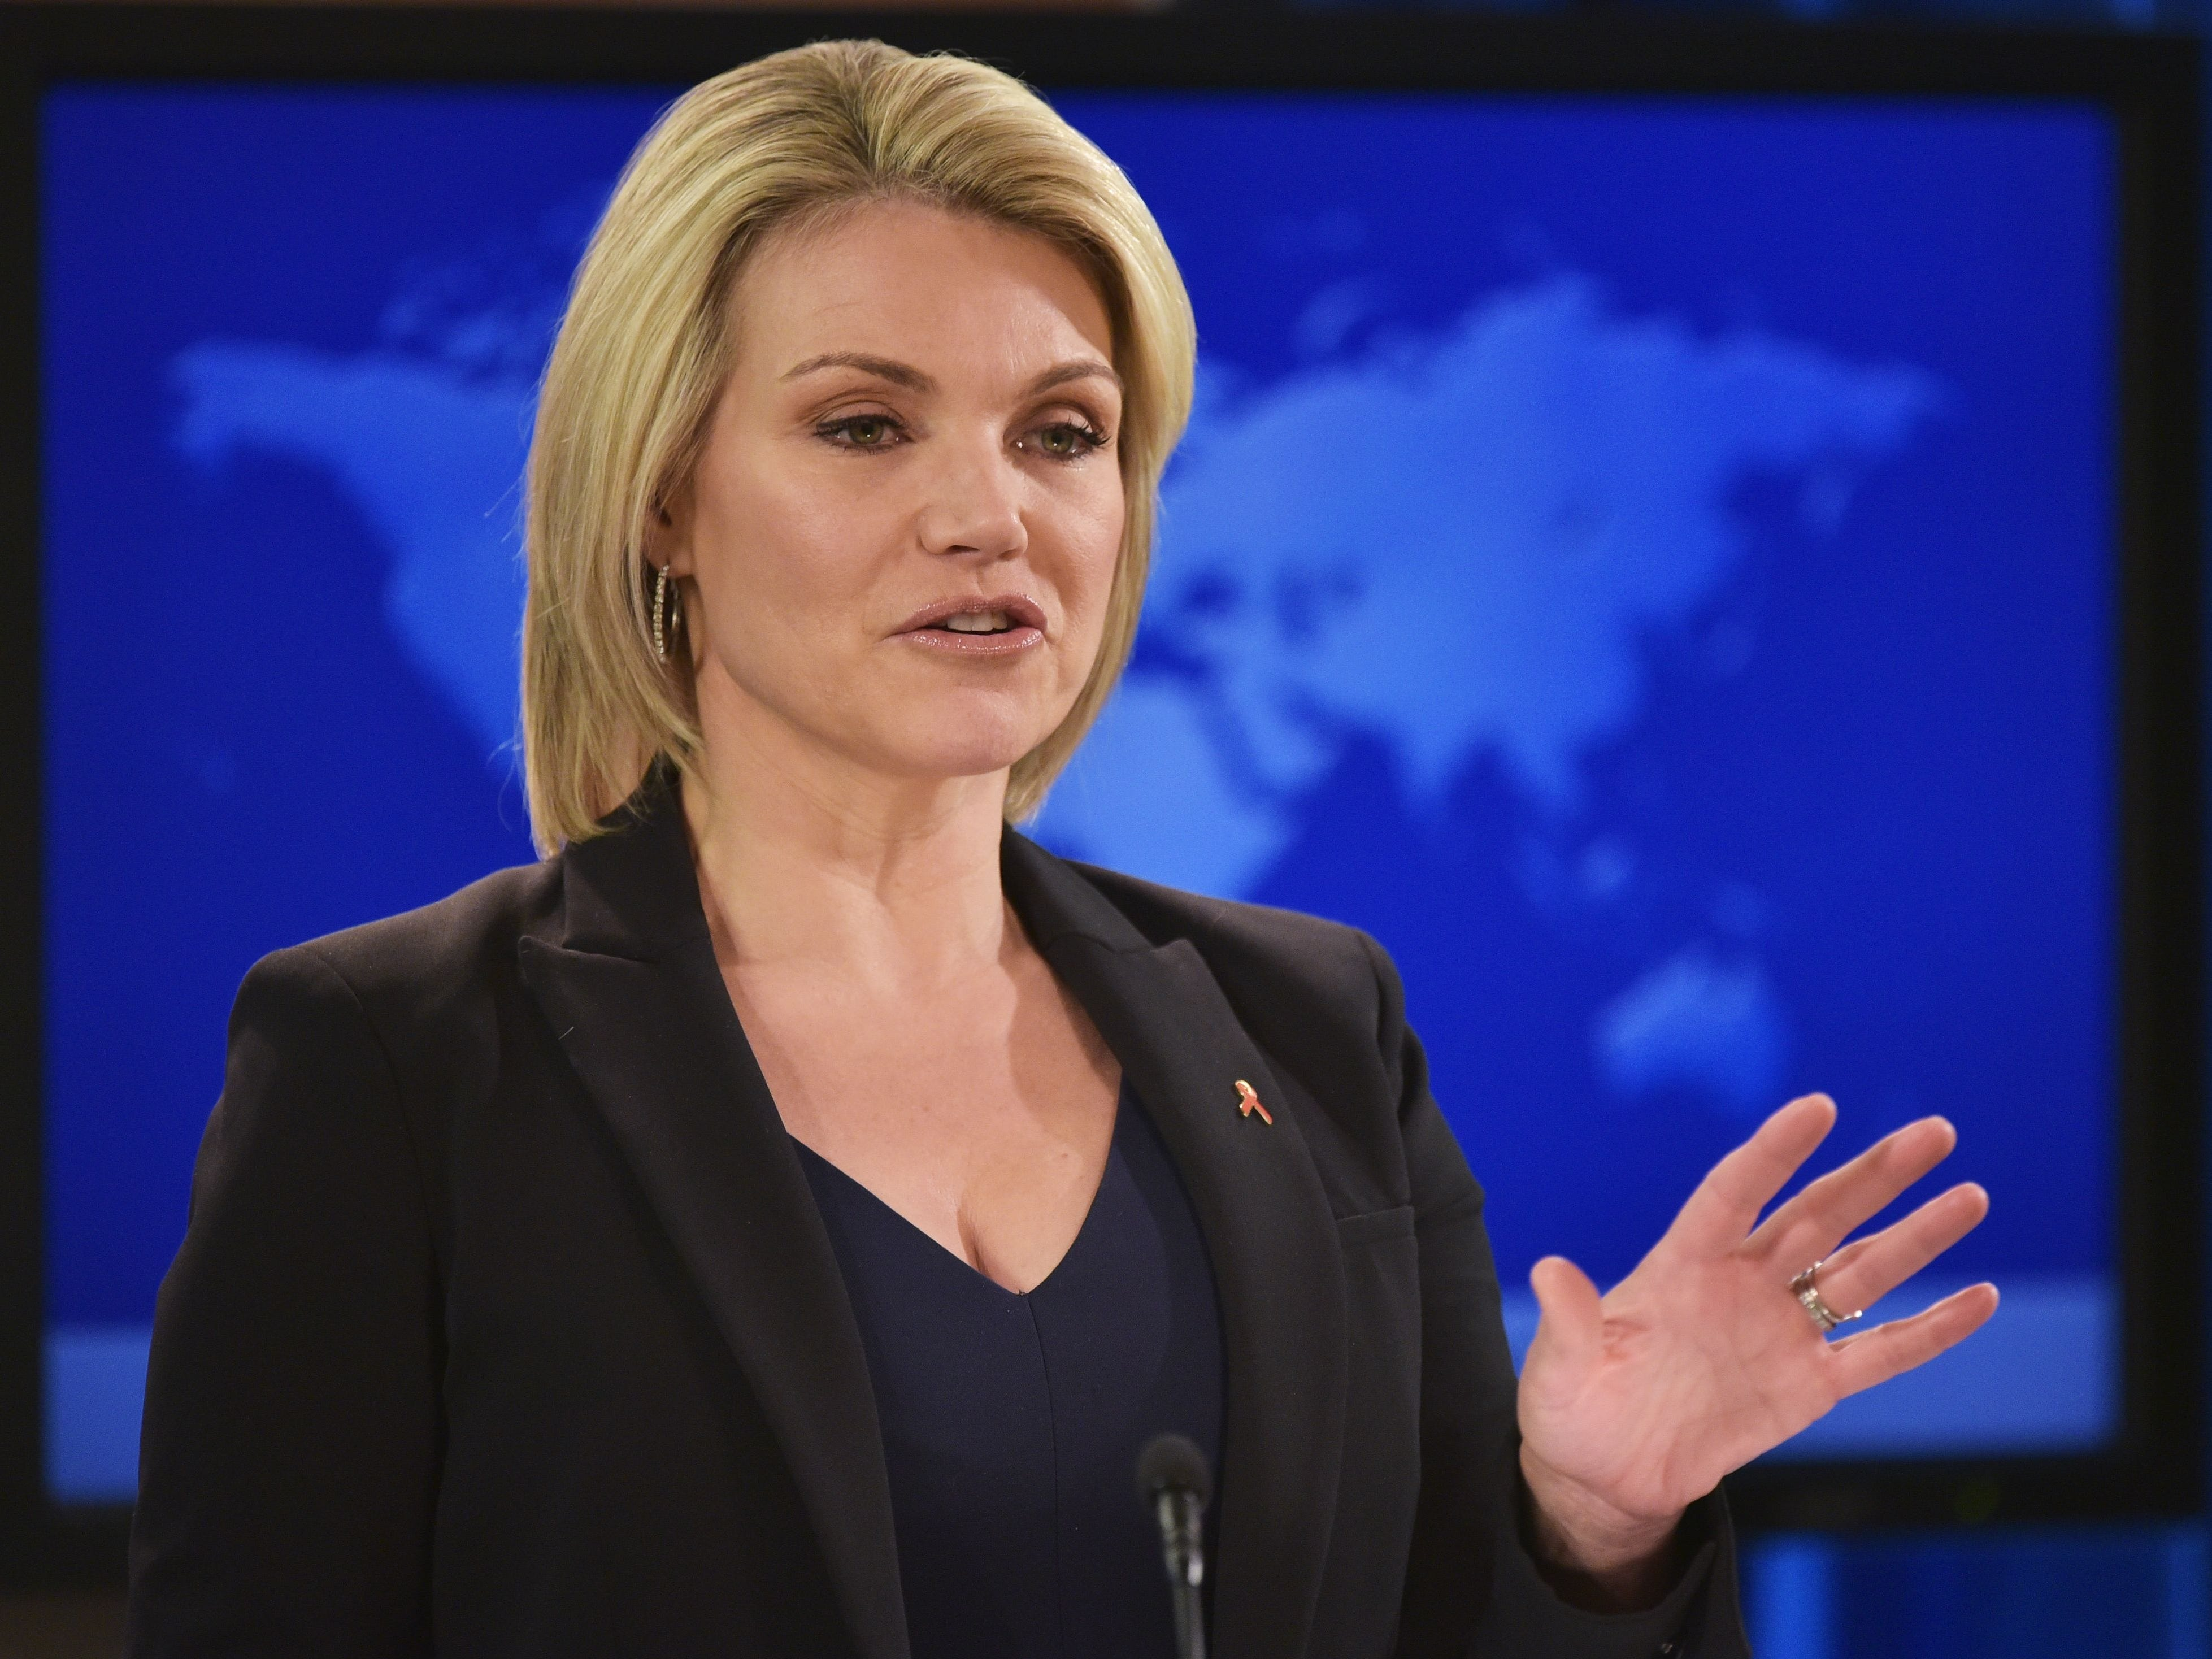 State Department Spokesperson Heather Nauert speaks Nov. 30, 2017, during a briefing at the State Department in Washington.